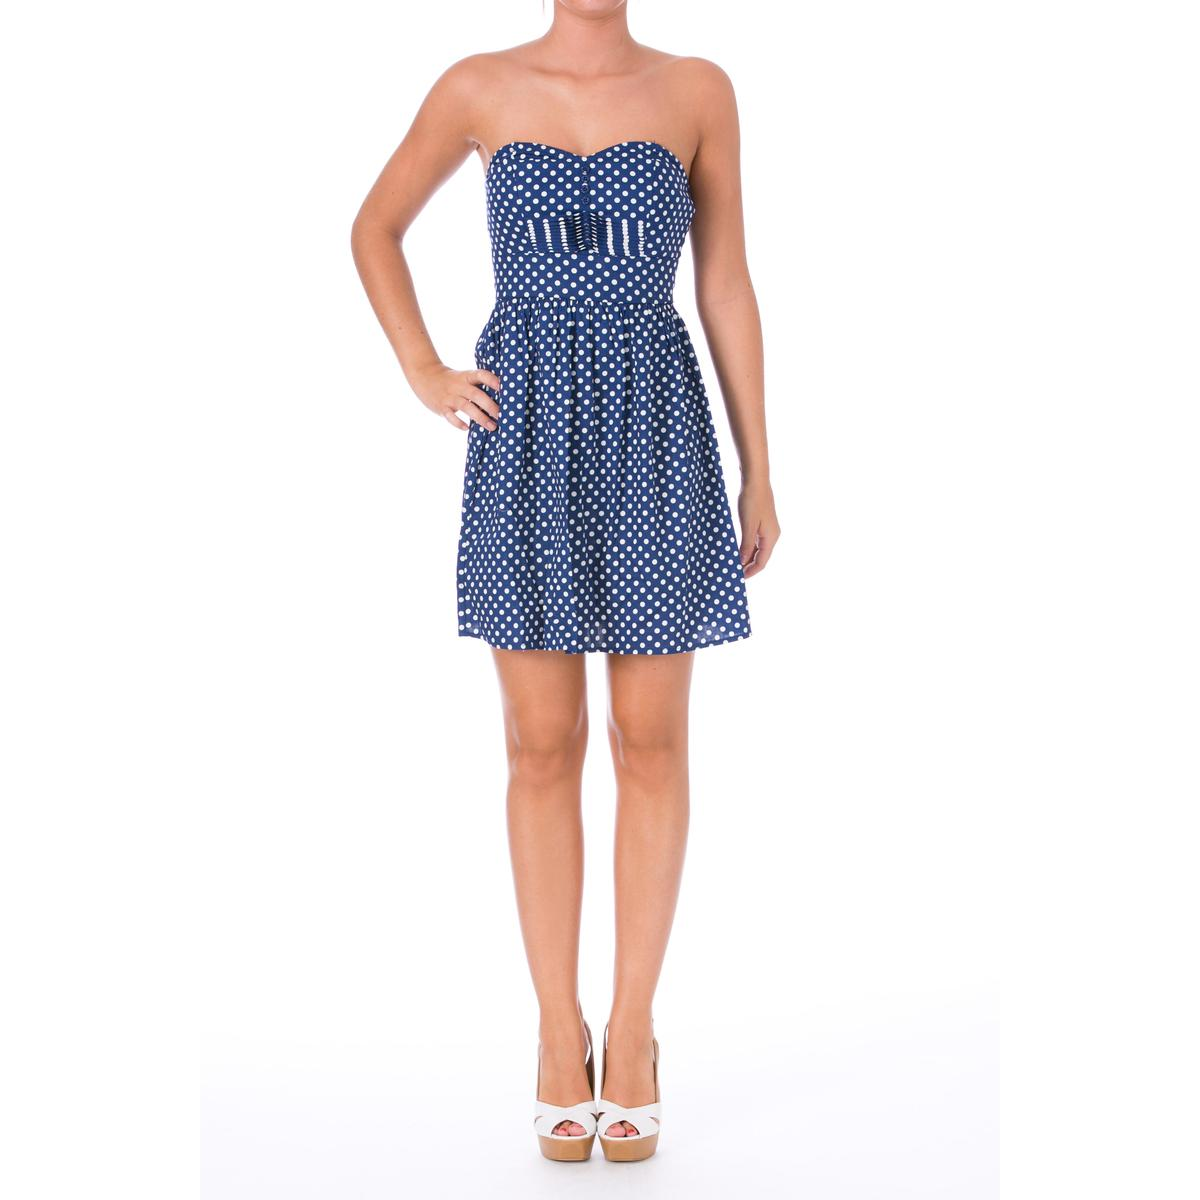 Shop B Darlin Juniors' Polka Dot Halter Dress online at roeprocjfc.ga A bow-tied halter lends retro flair to a B Darlin casual dress scattered with fun polka dots.5/5(2).